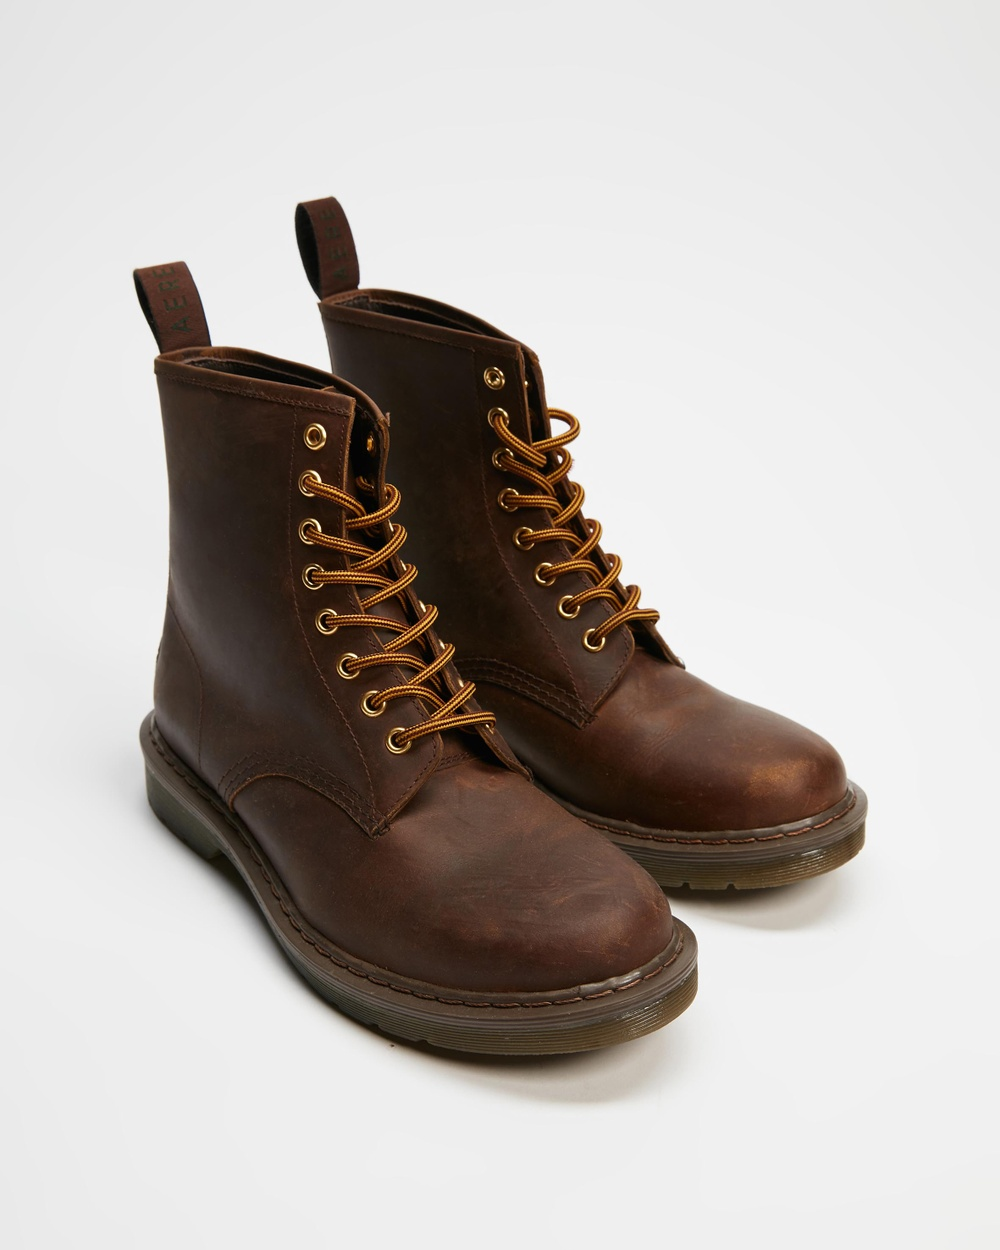 AERE Leather Lace Up Boots Brown Lace-Up